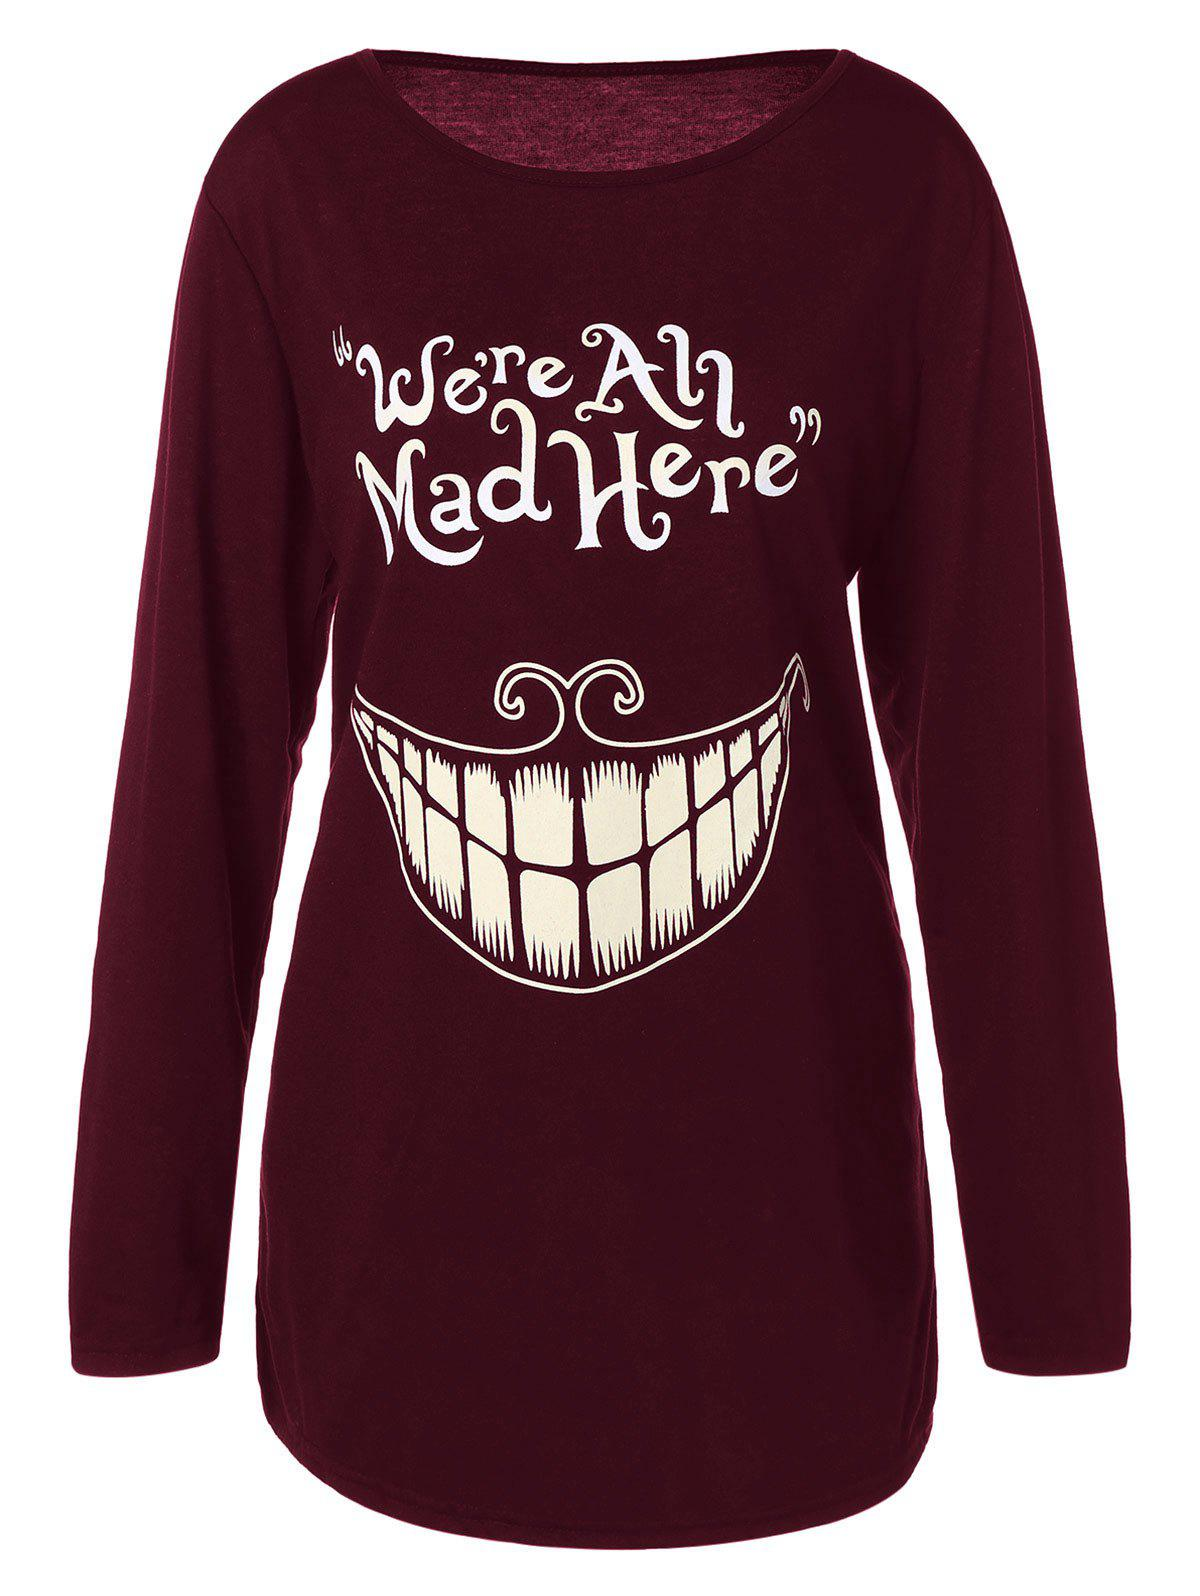 Plus Size Teeth and Letter Print T-shirt plus size letter print hooded sweatshirt dress